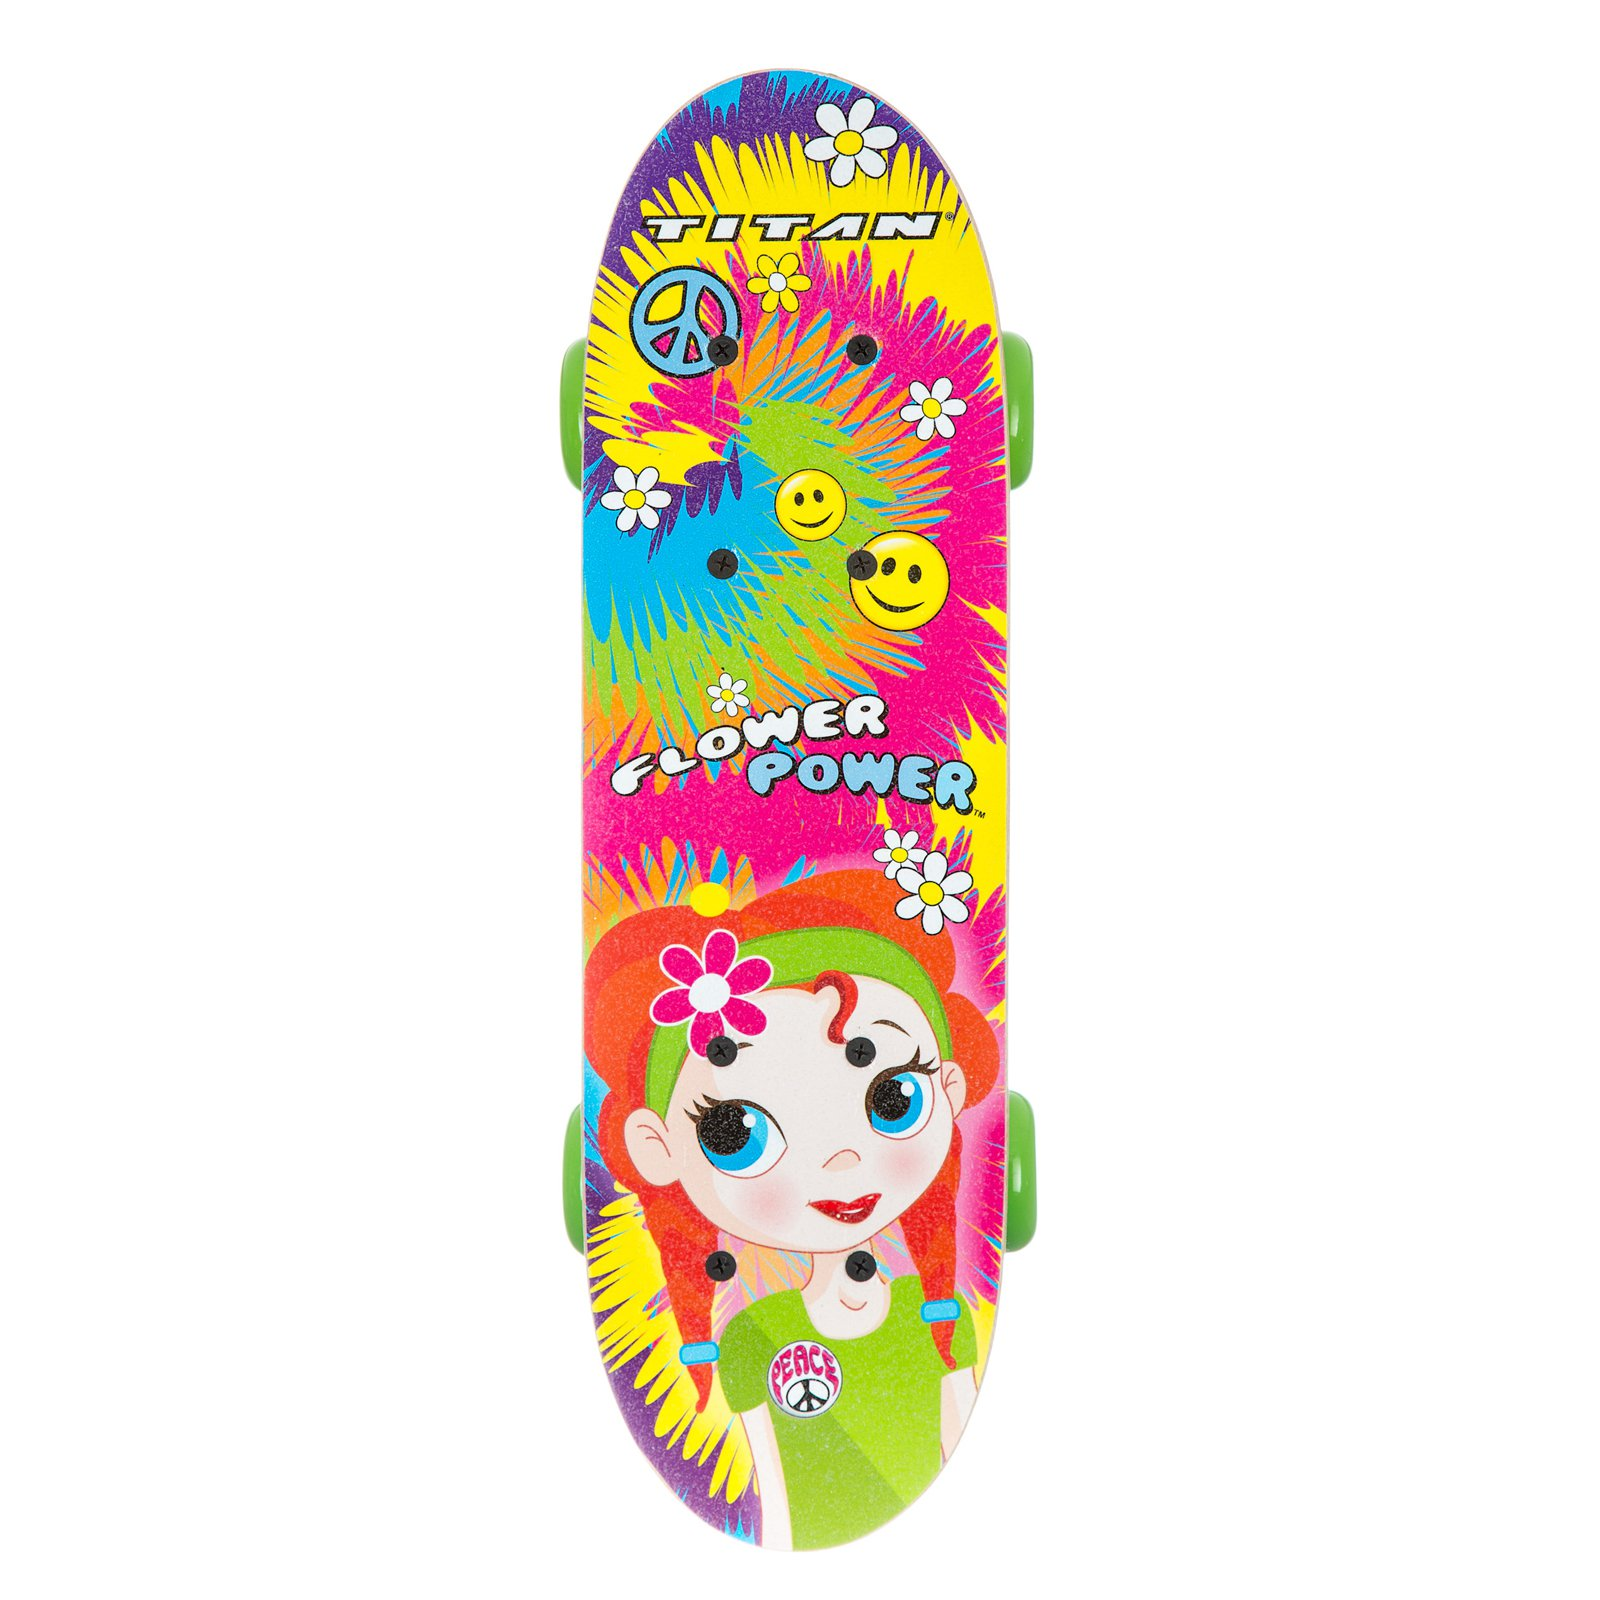 "17"" Titan Flower Power Princess Girls' Complete Skateboard, Multi-Color by Generic"